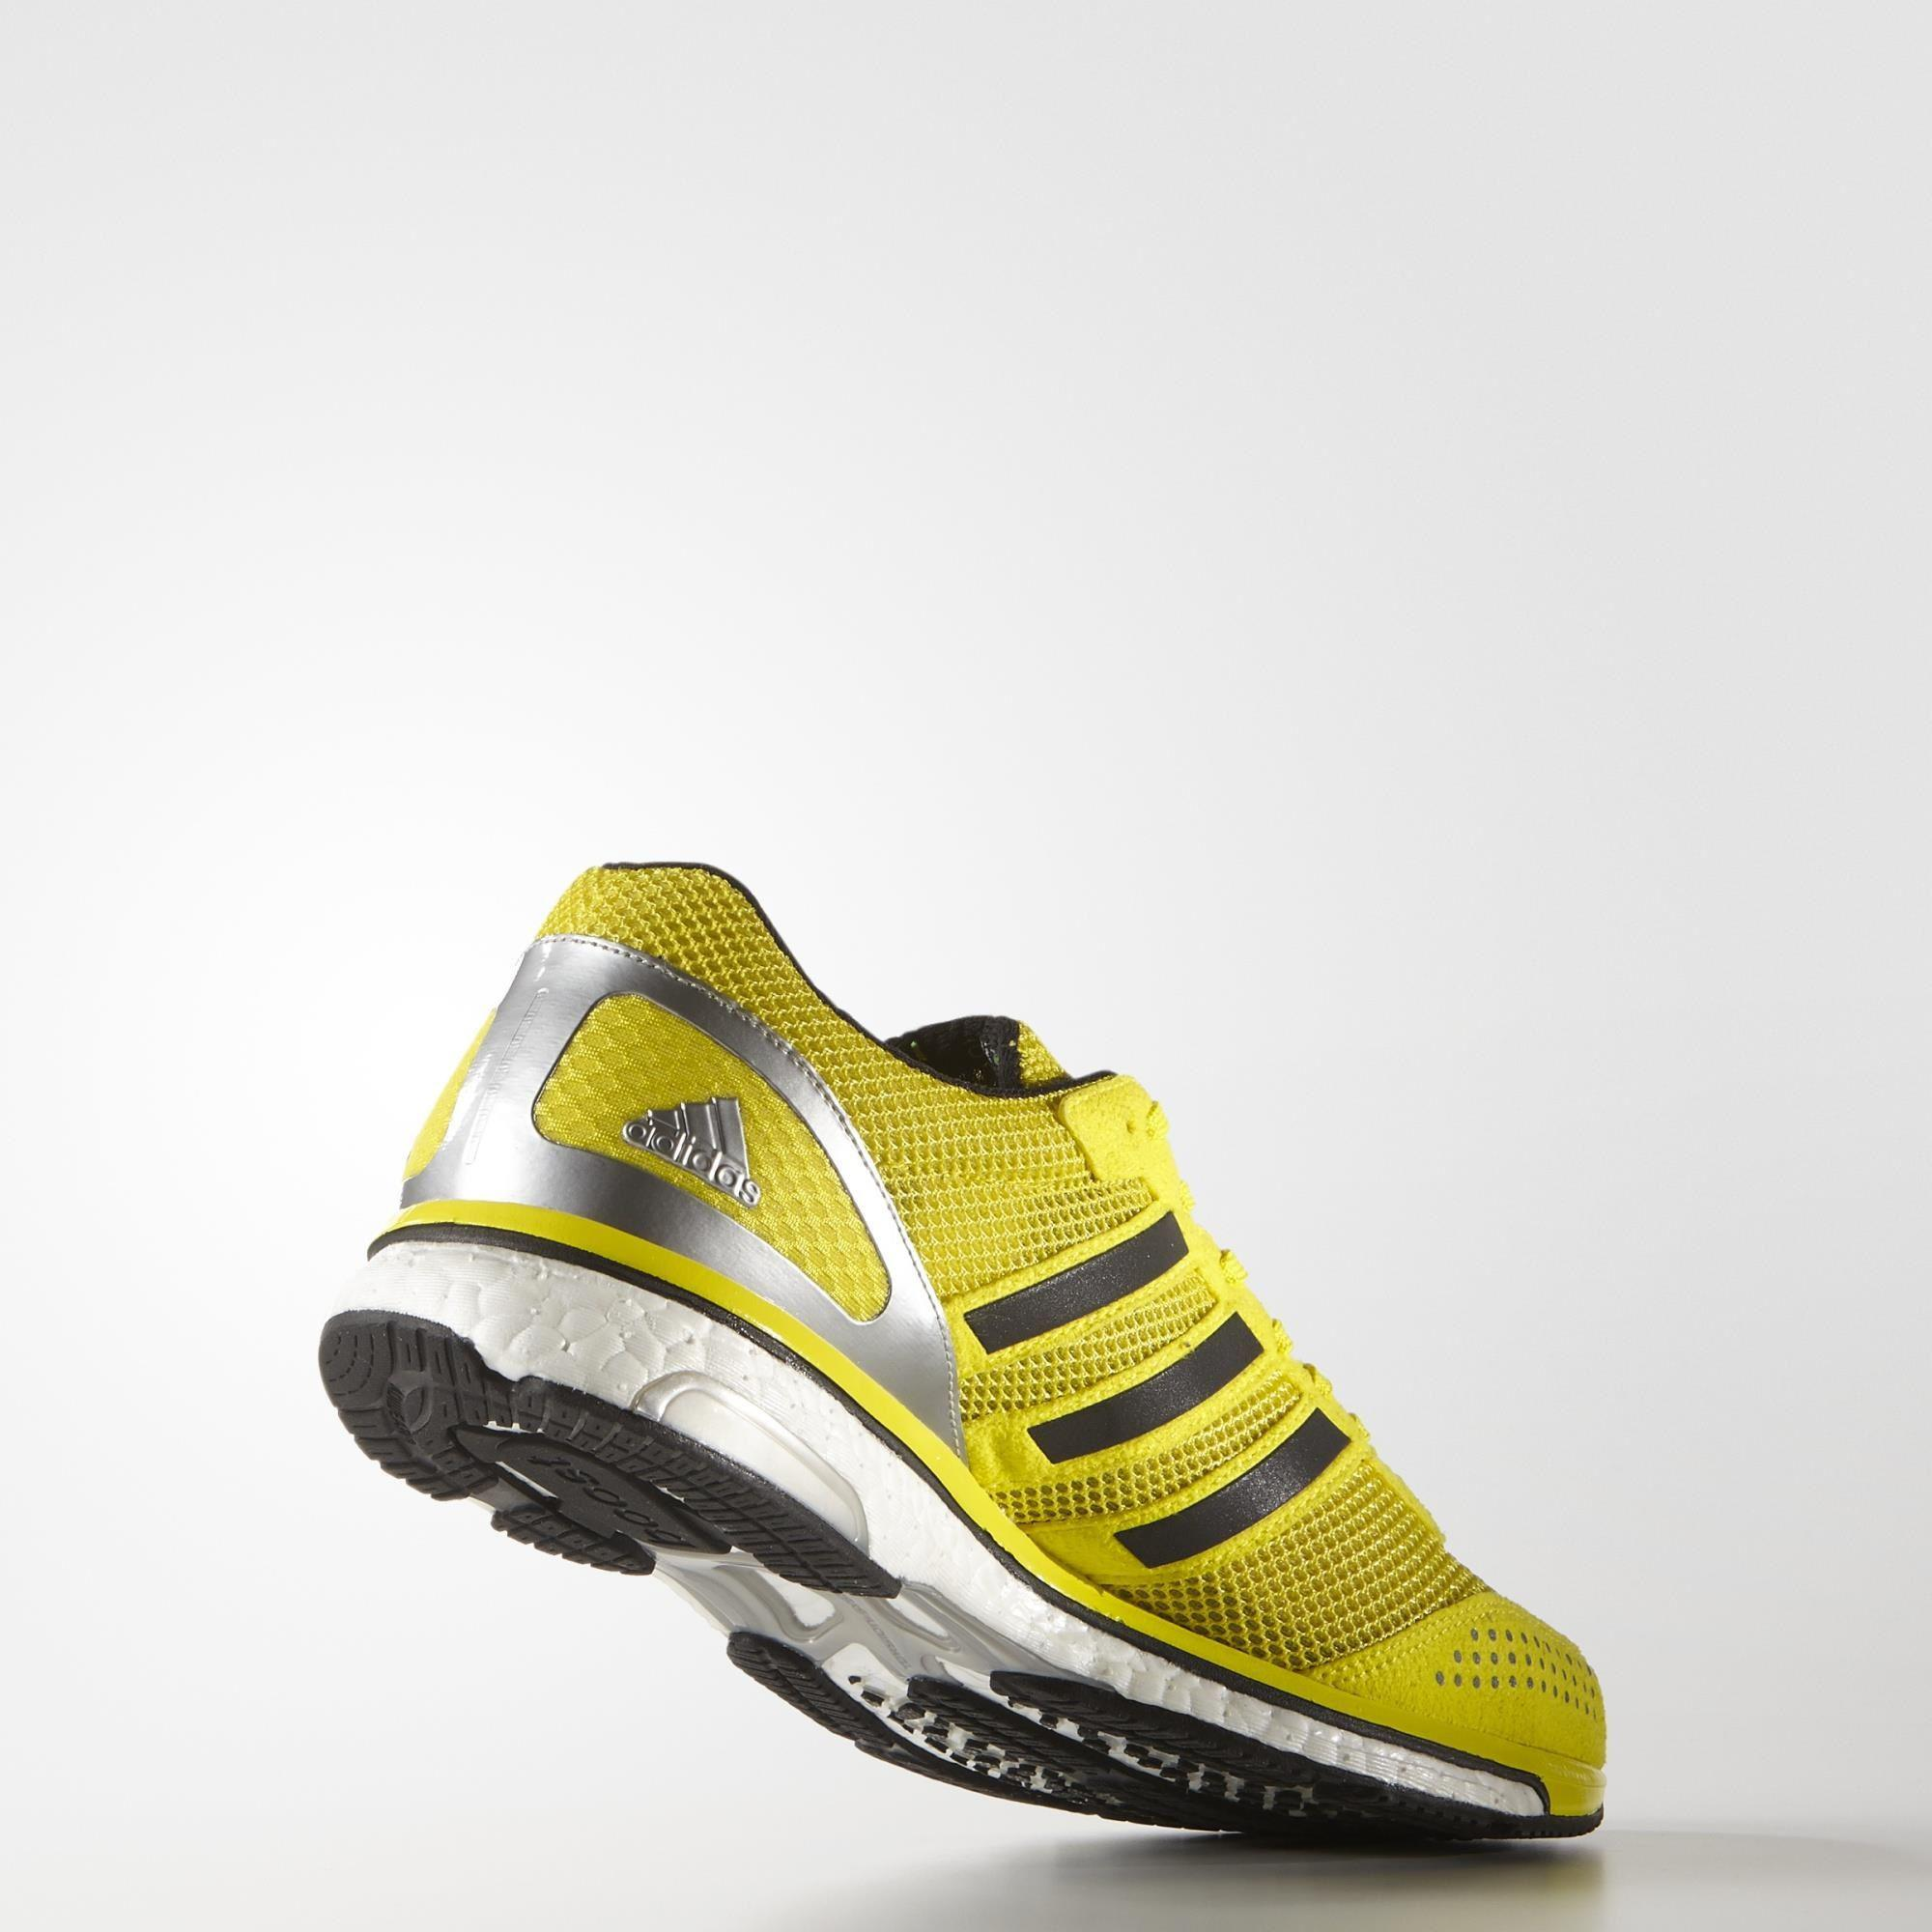 Out Of Stock. Adidas Mens Adizero Adios Boost 2.0 Haile Running Shoes -  Yellow/White ...